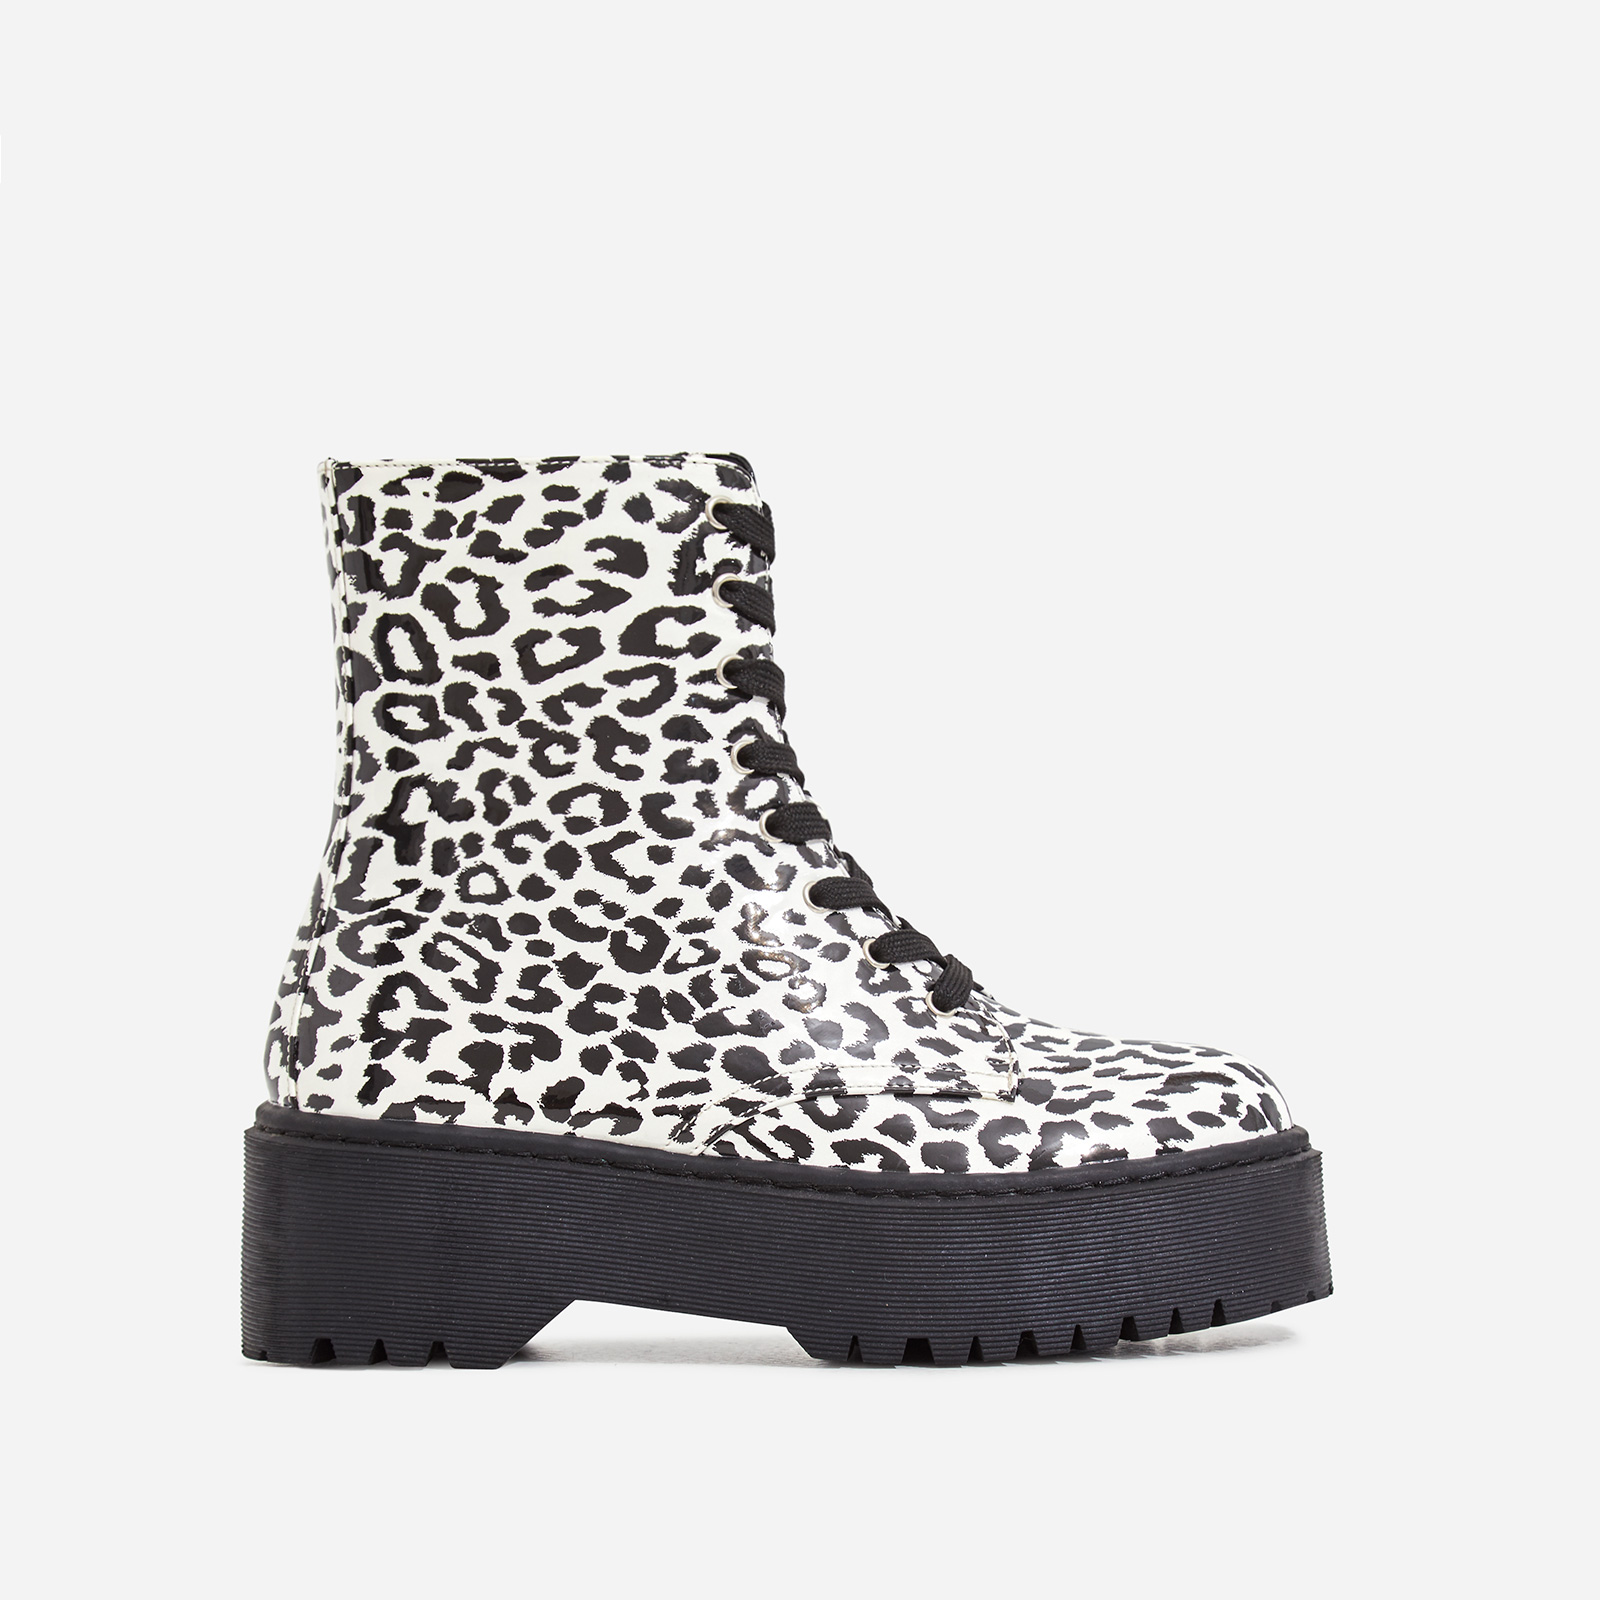 Poppin Lace Up Ankle Biker Boot In White Leopard Print Patent